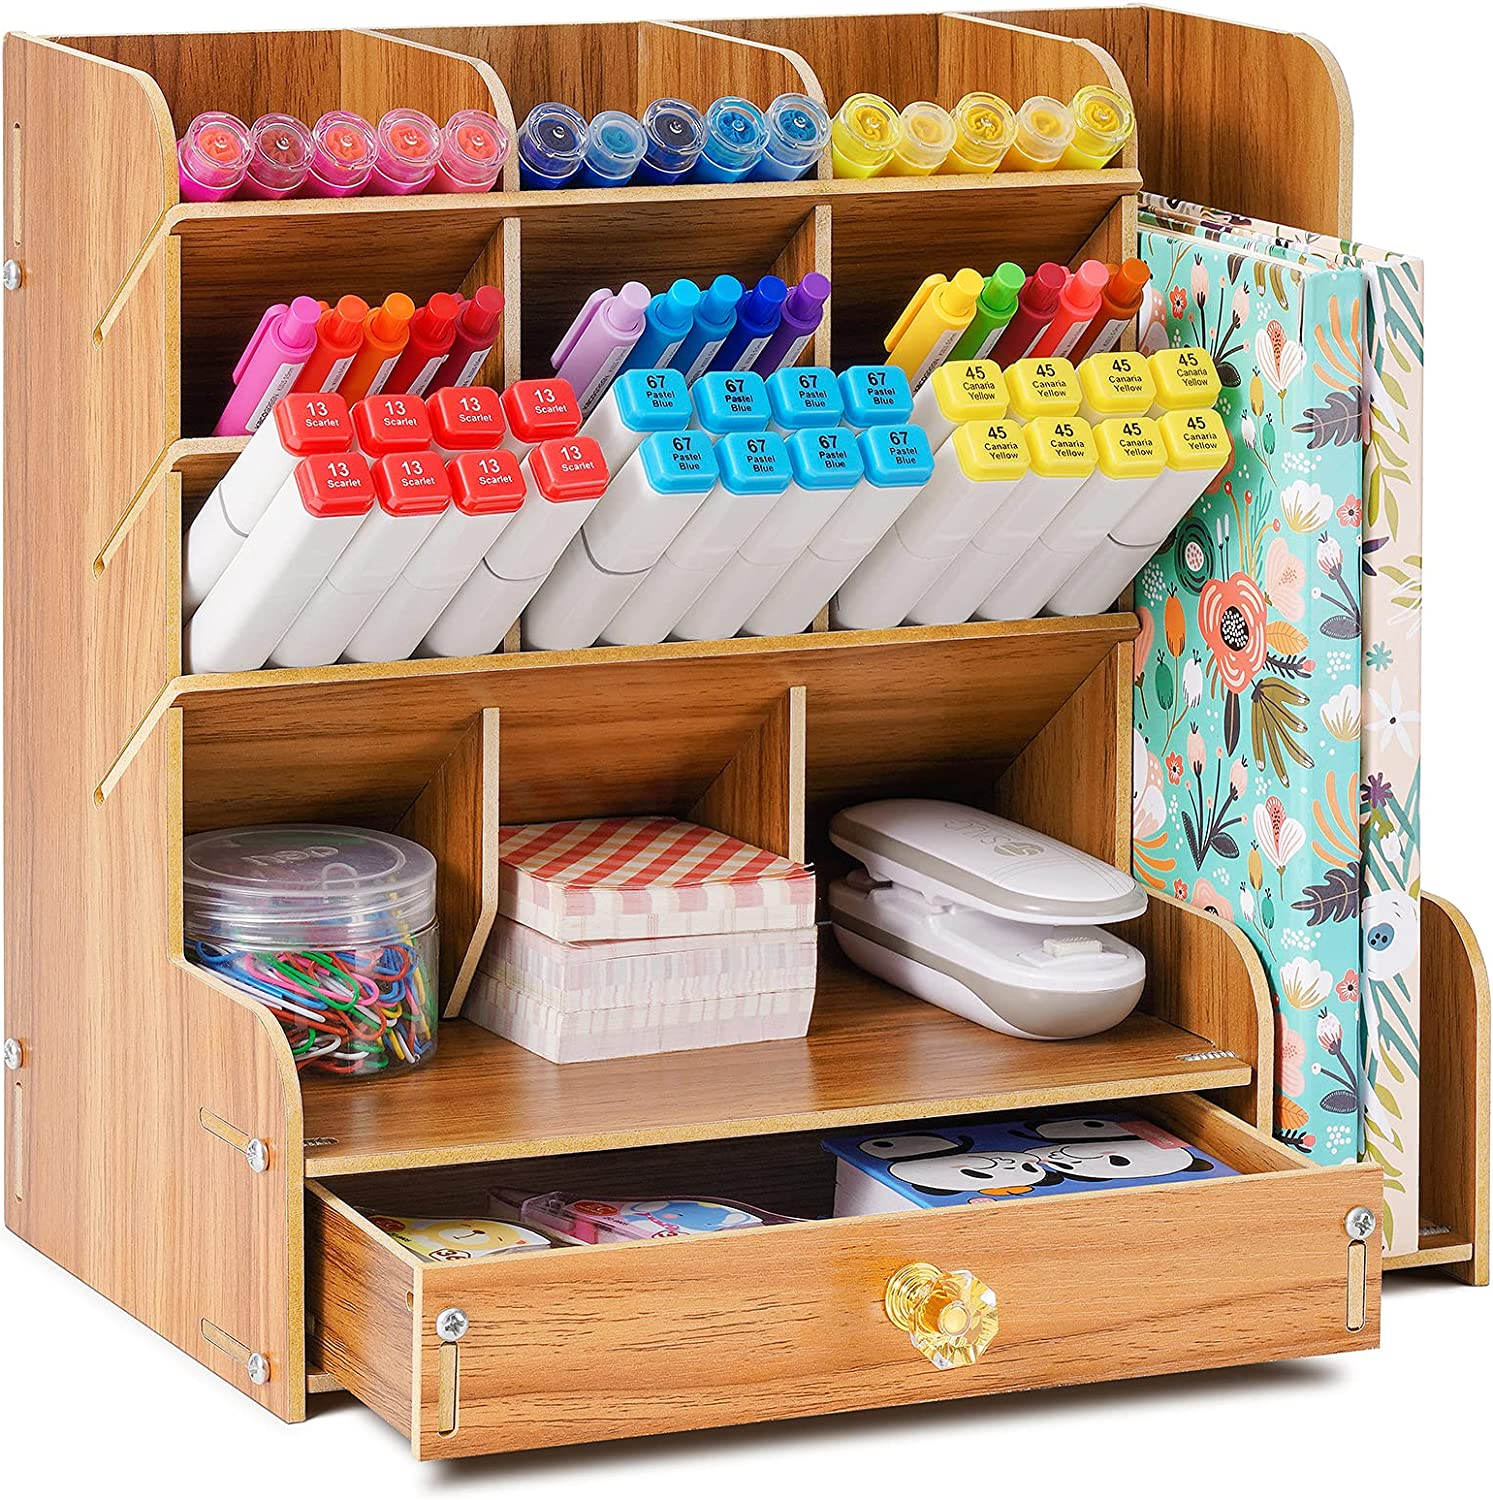 Marbrasse Upgraded Wooden 67% OFF of fixed price Luxury goods Pencil Pen Organizer Multi-Functional